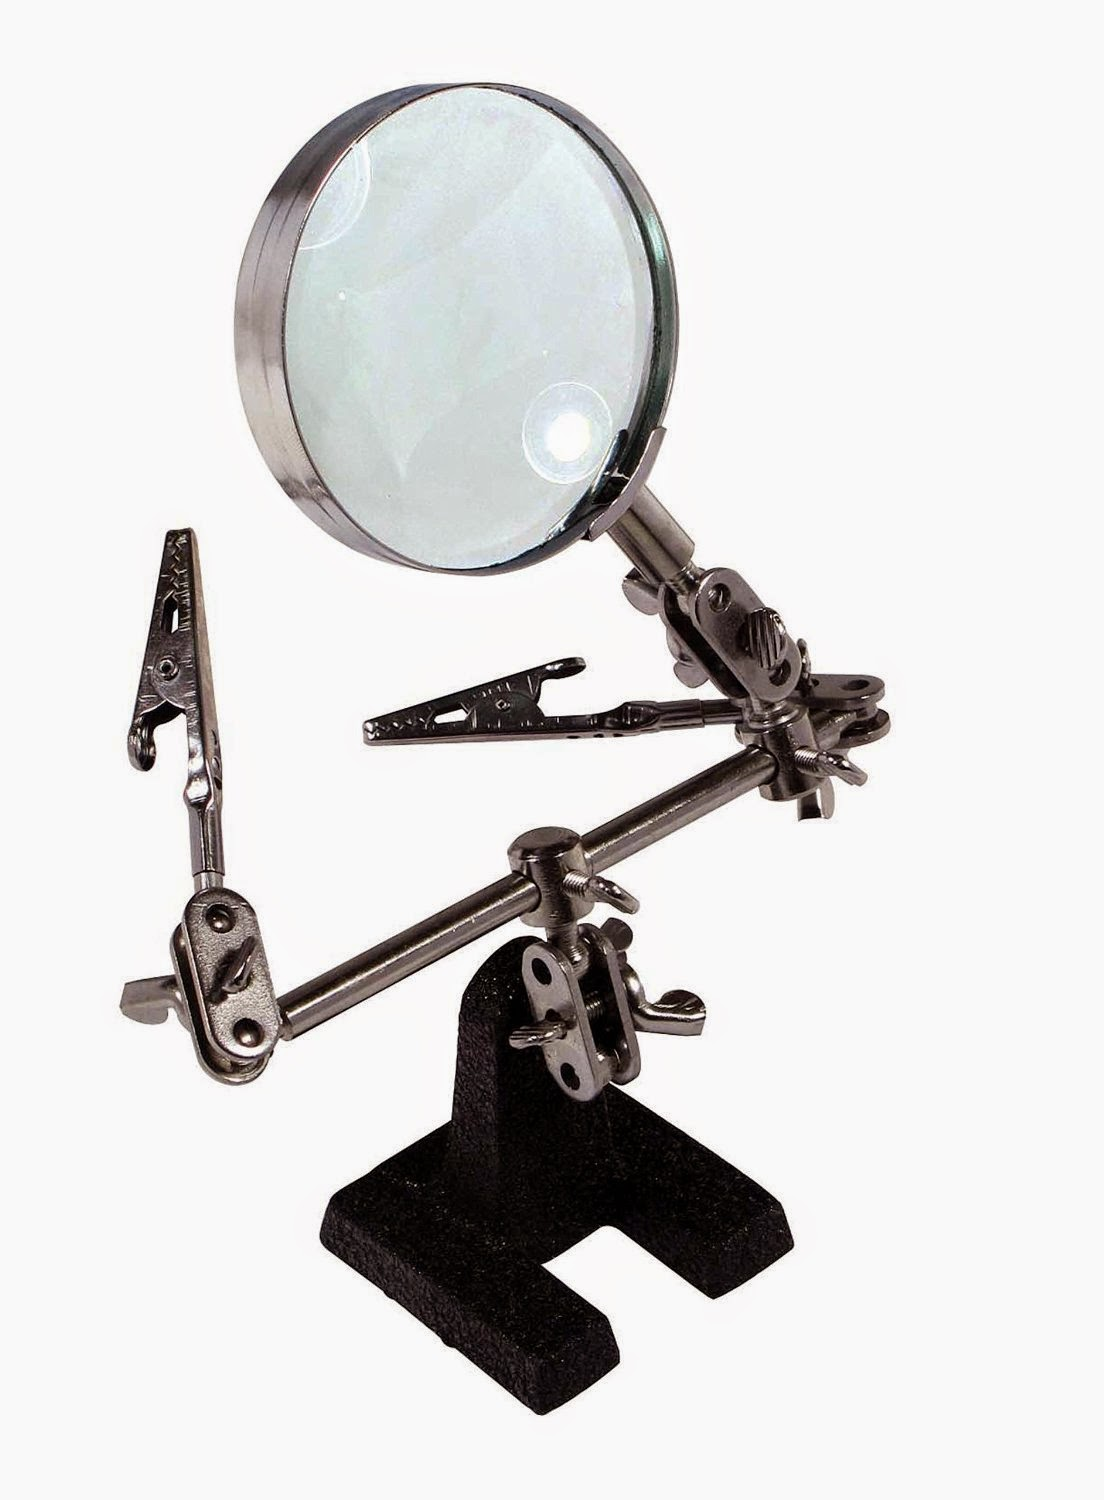 Hobby Magnifier SE MZ101B Helping Hand Magnifier